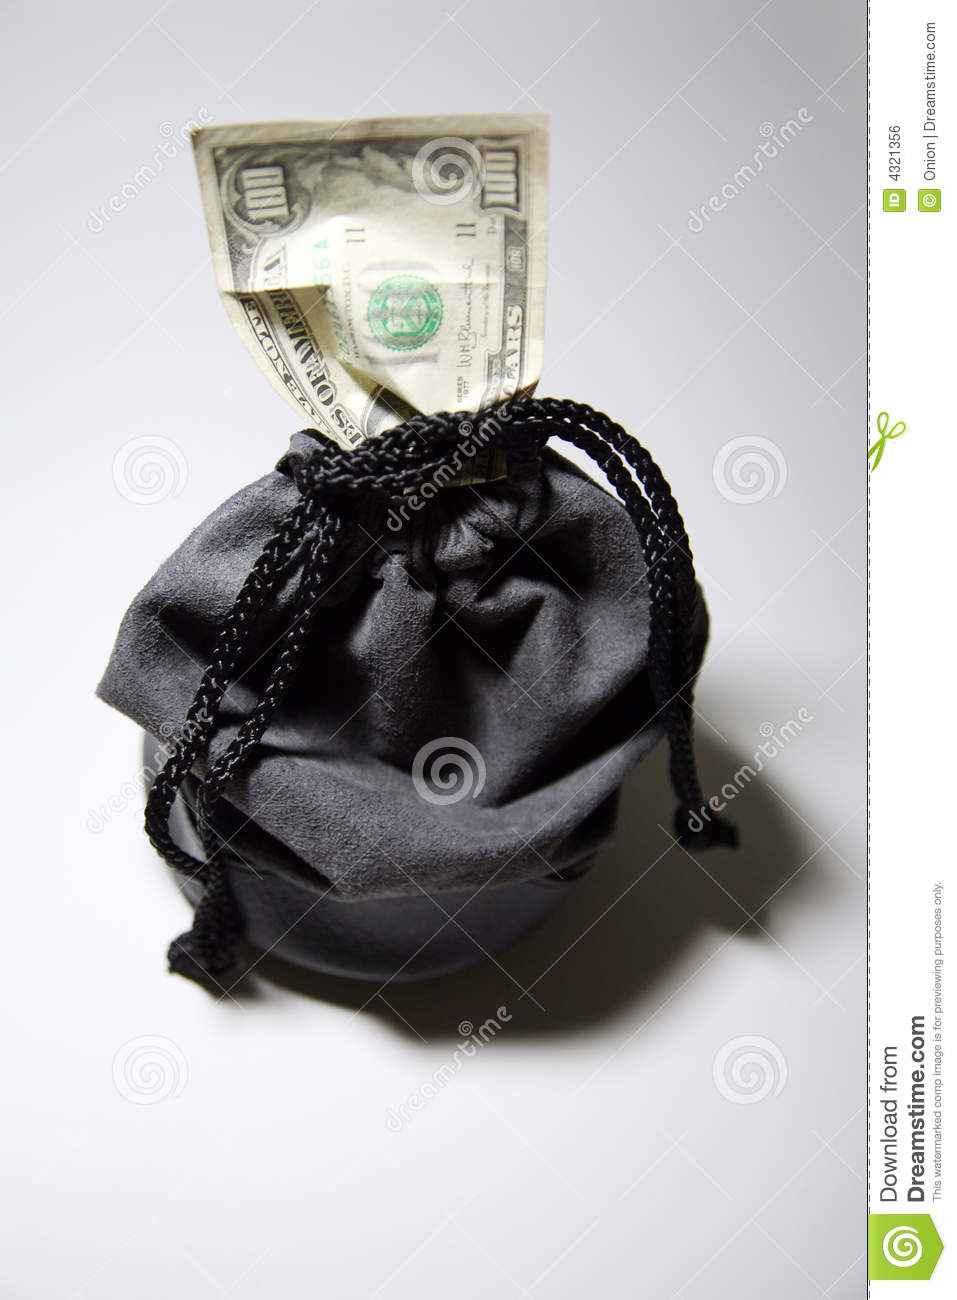 Drawstring bag with money